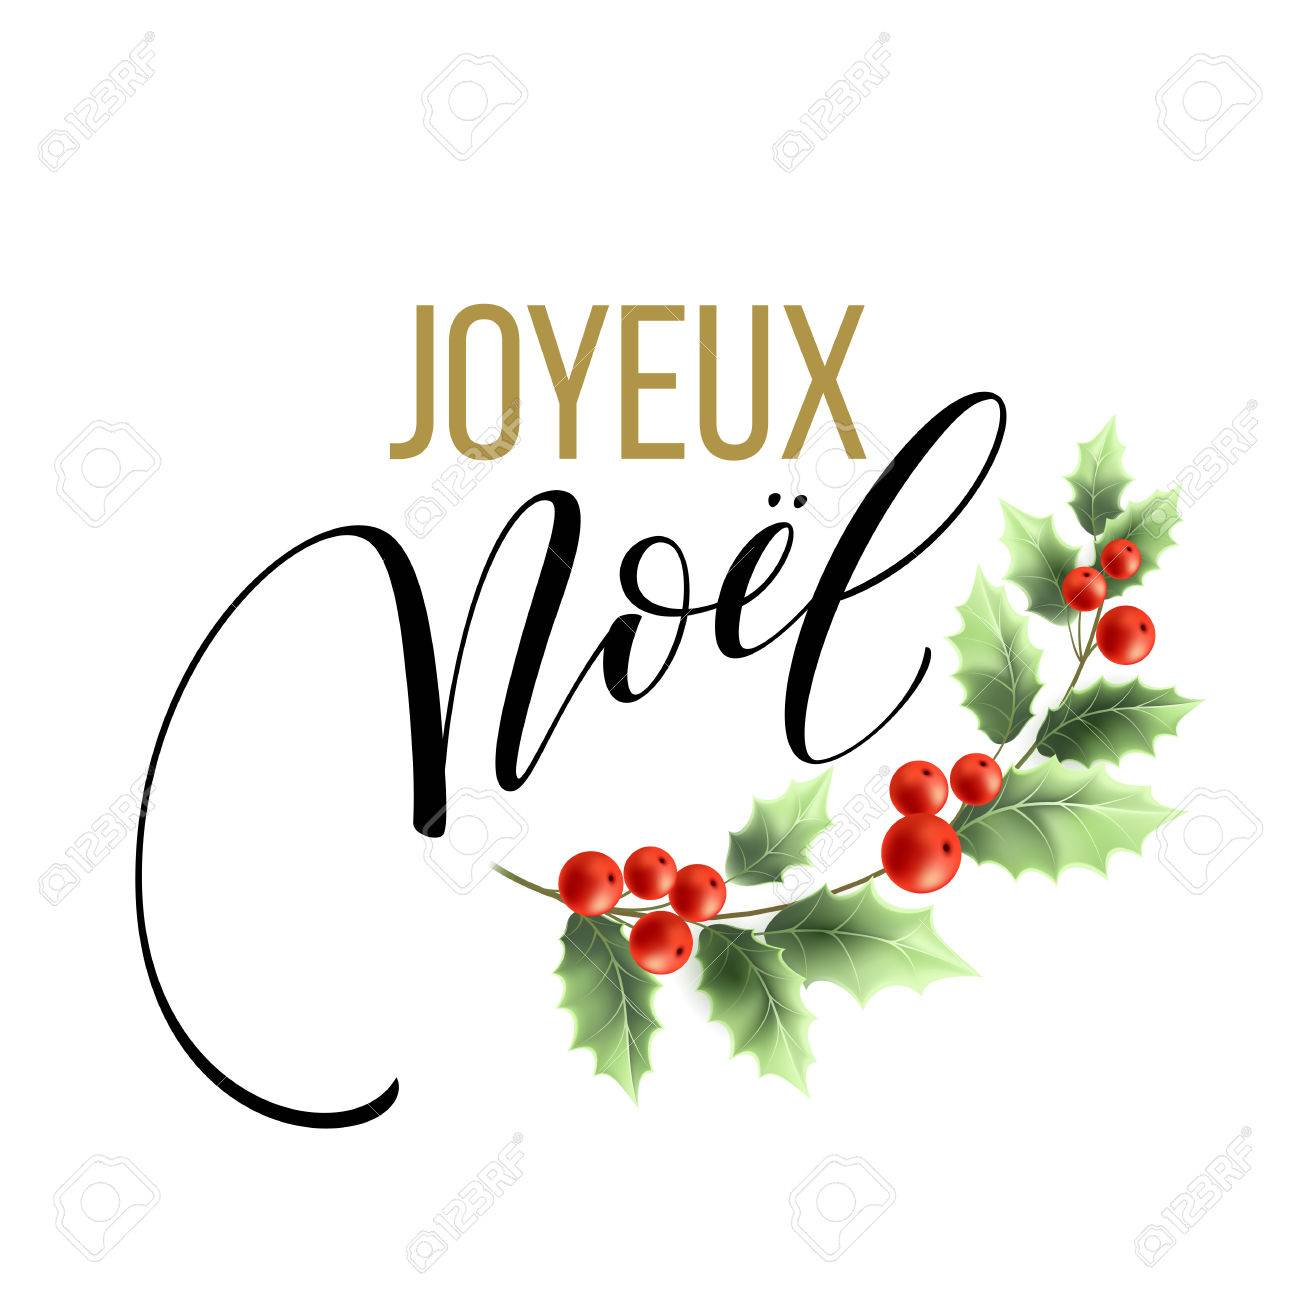 Merry christmas card template with greetings in french language merry christmas card template with greetings in french language joyeux noel vector illustration eps10 m4hsunfo